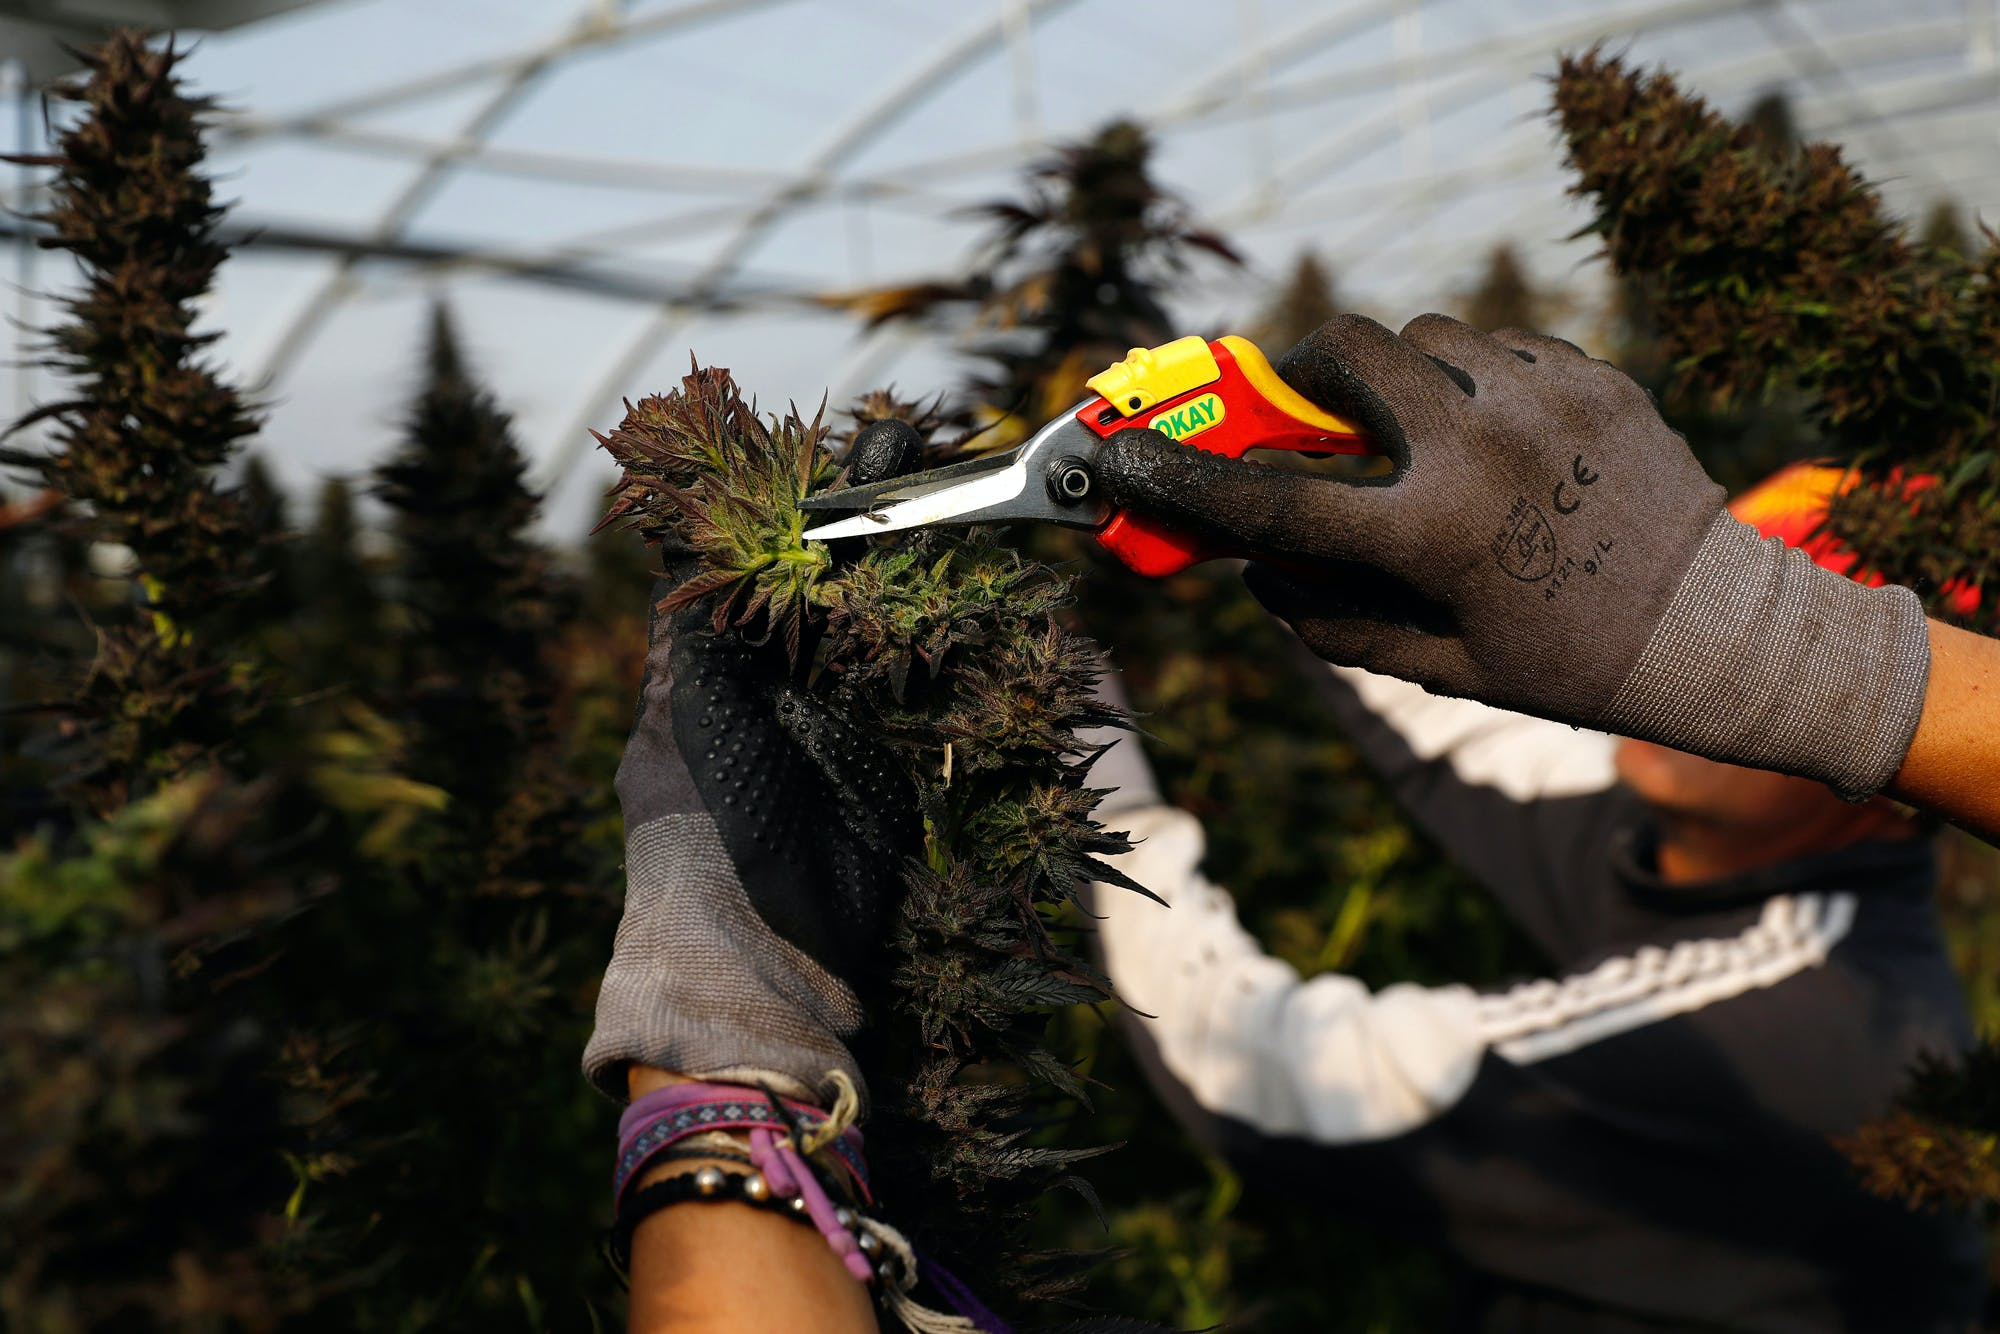 CannabisFarm Medical marijuana patients are getting evicted in legal states